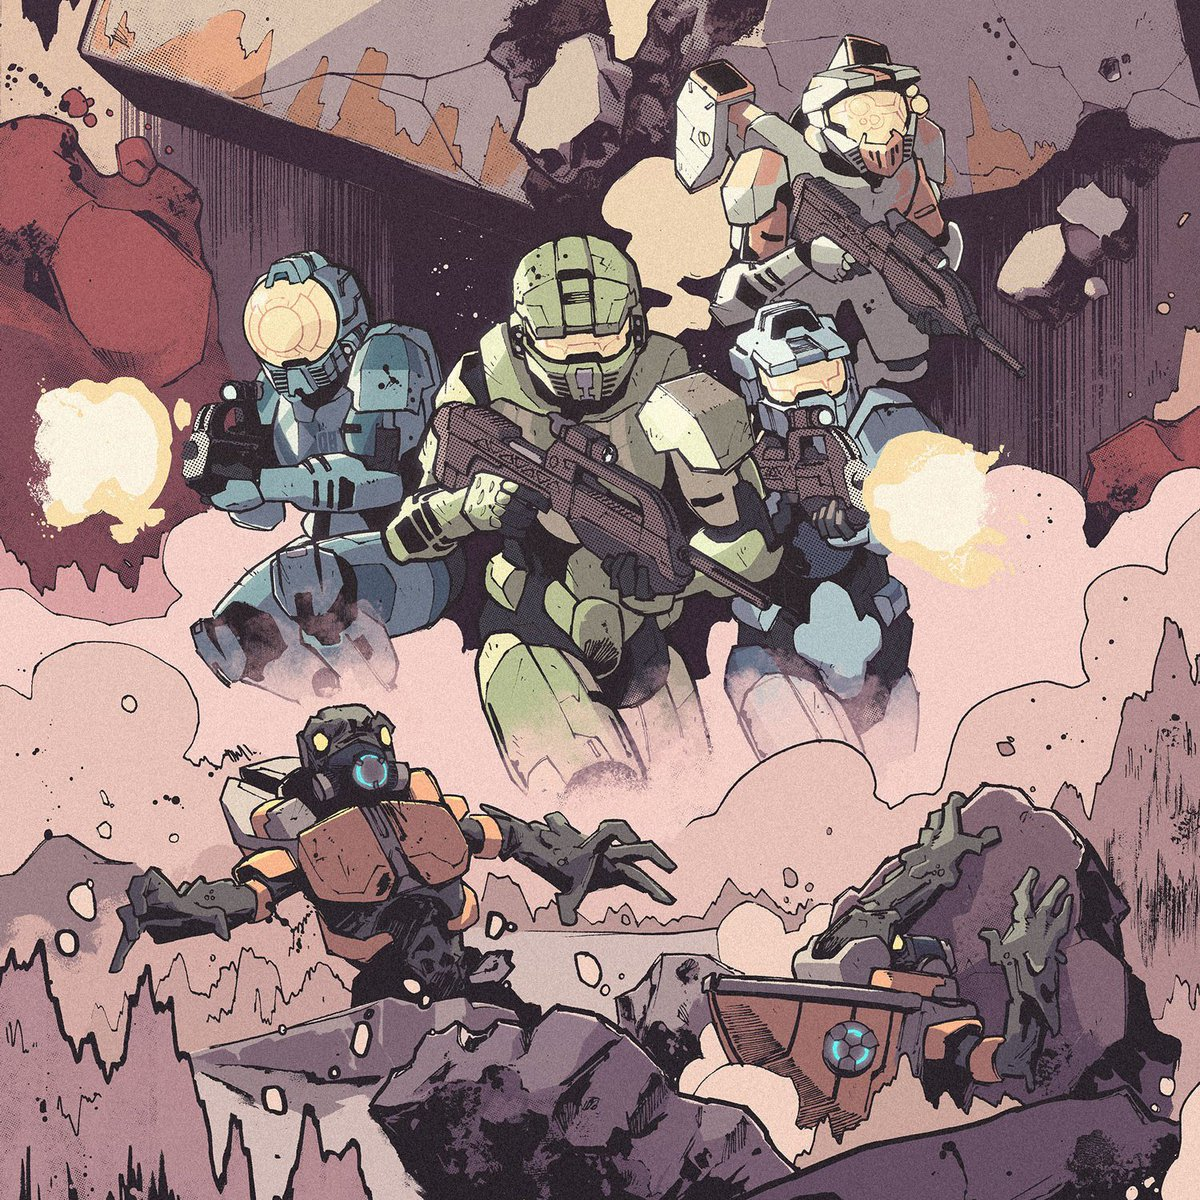 Trapped and surrounded by the Covenant, Blue Team must work together with Insurrectionist rebels to survive. The third and final issue of Halo: Collateral Damage has arrived – get yours from @DarkHorseComics today!  https://www. darkhorse.com/Comics/3001-92 8/Halo-Collateral-Damage-3 &nbsp; … <br>http://pic.twitter.com/7jXncknv4C